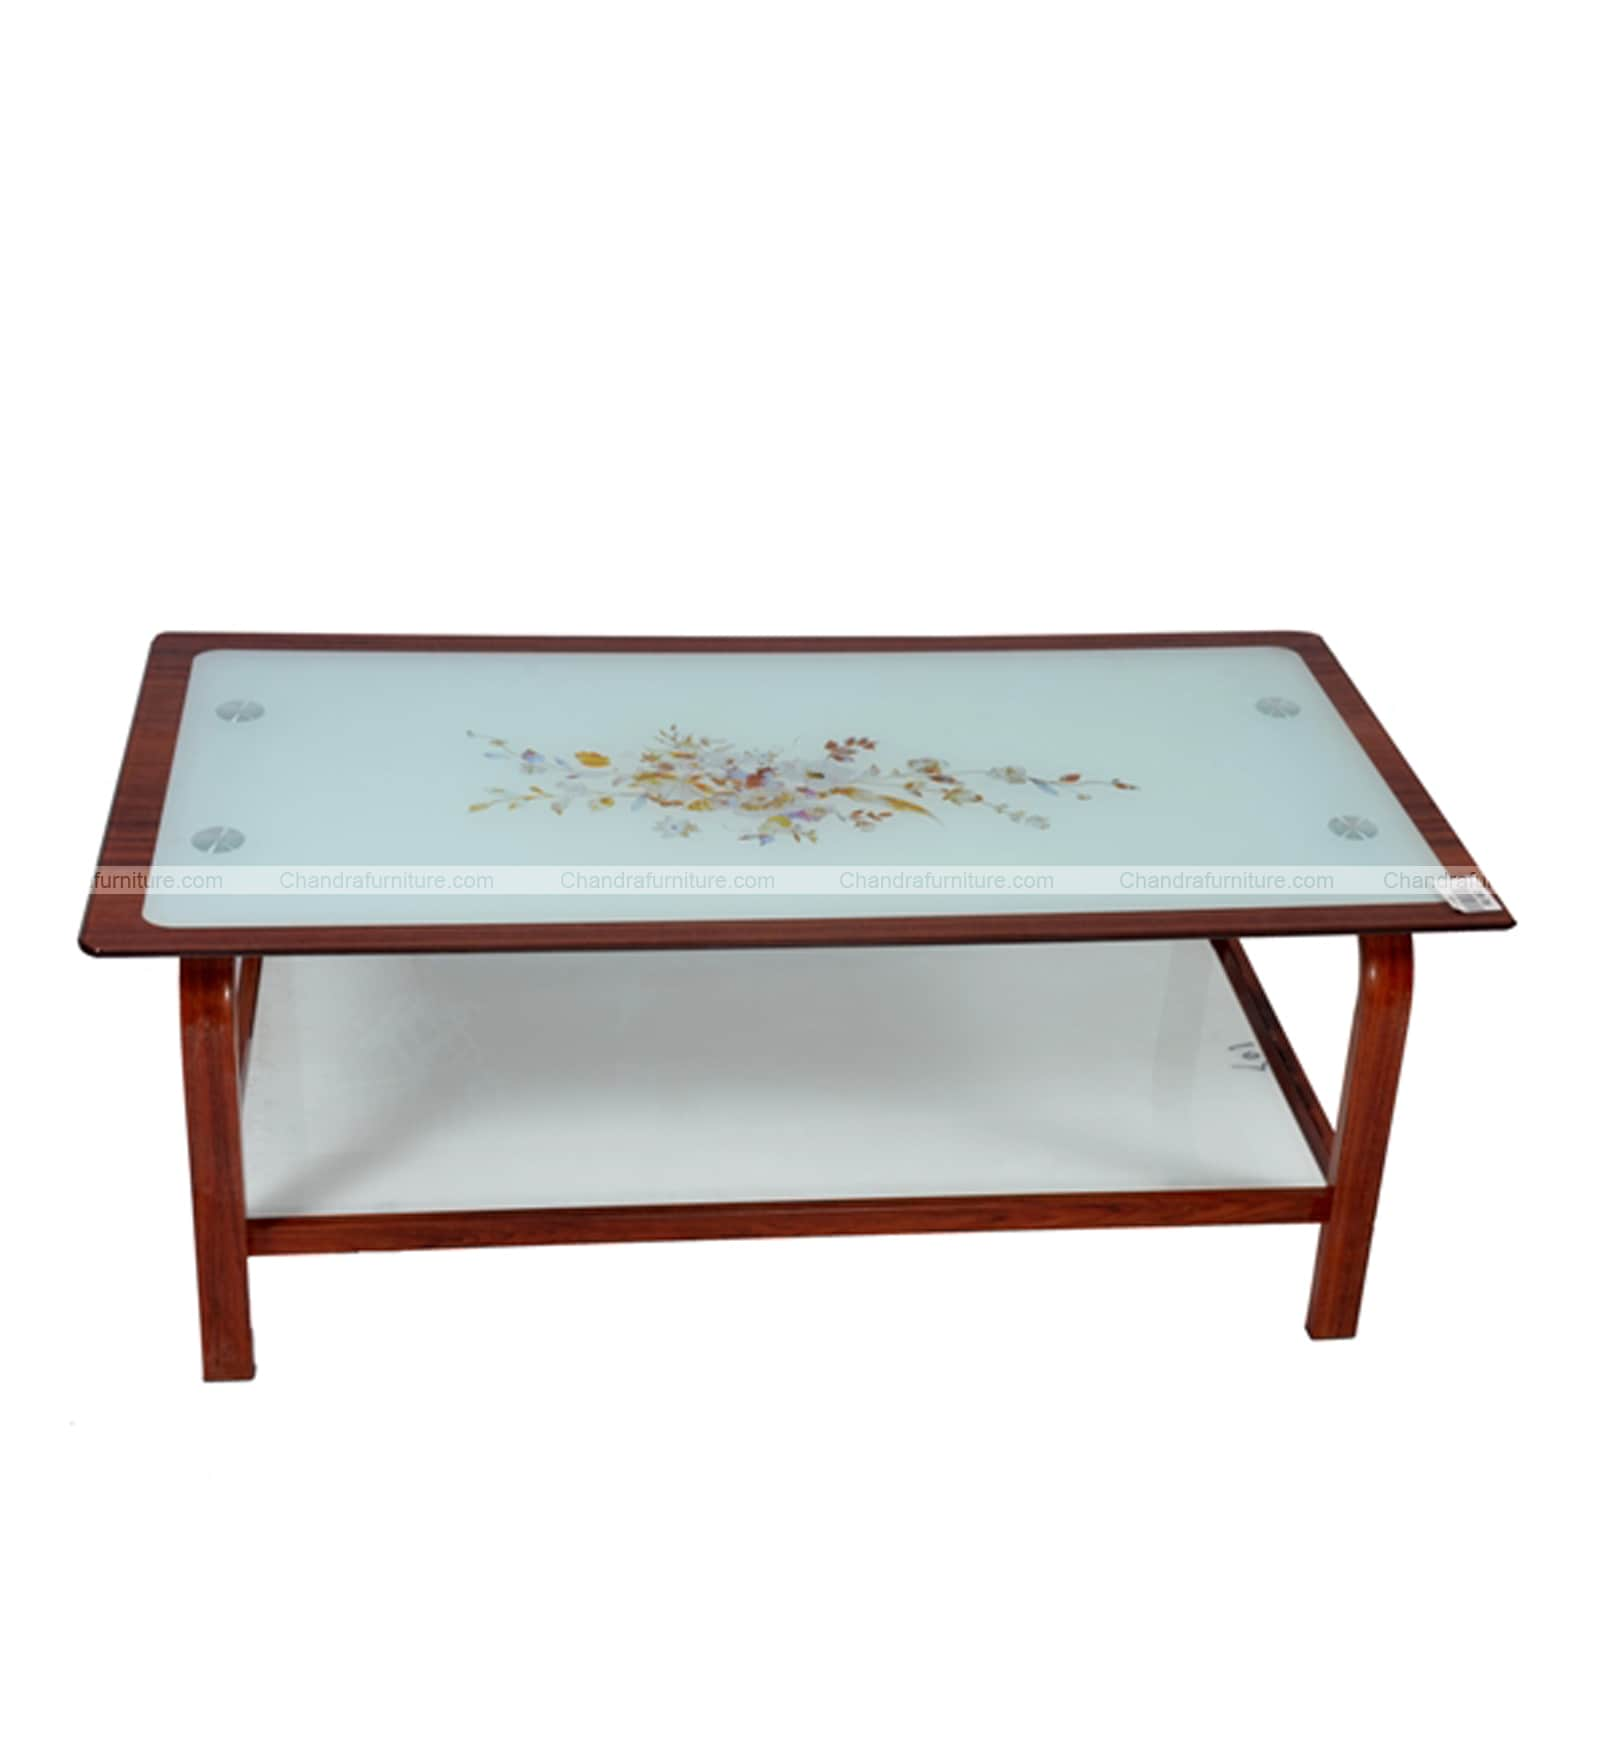 CHANDRA FURNITURE CENTER TABLE  107#